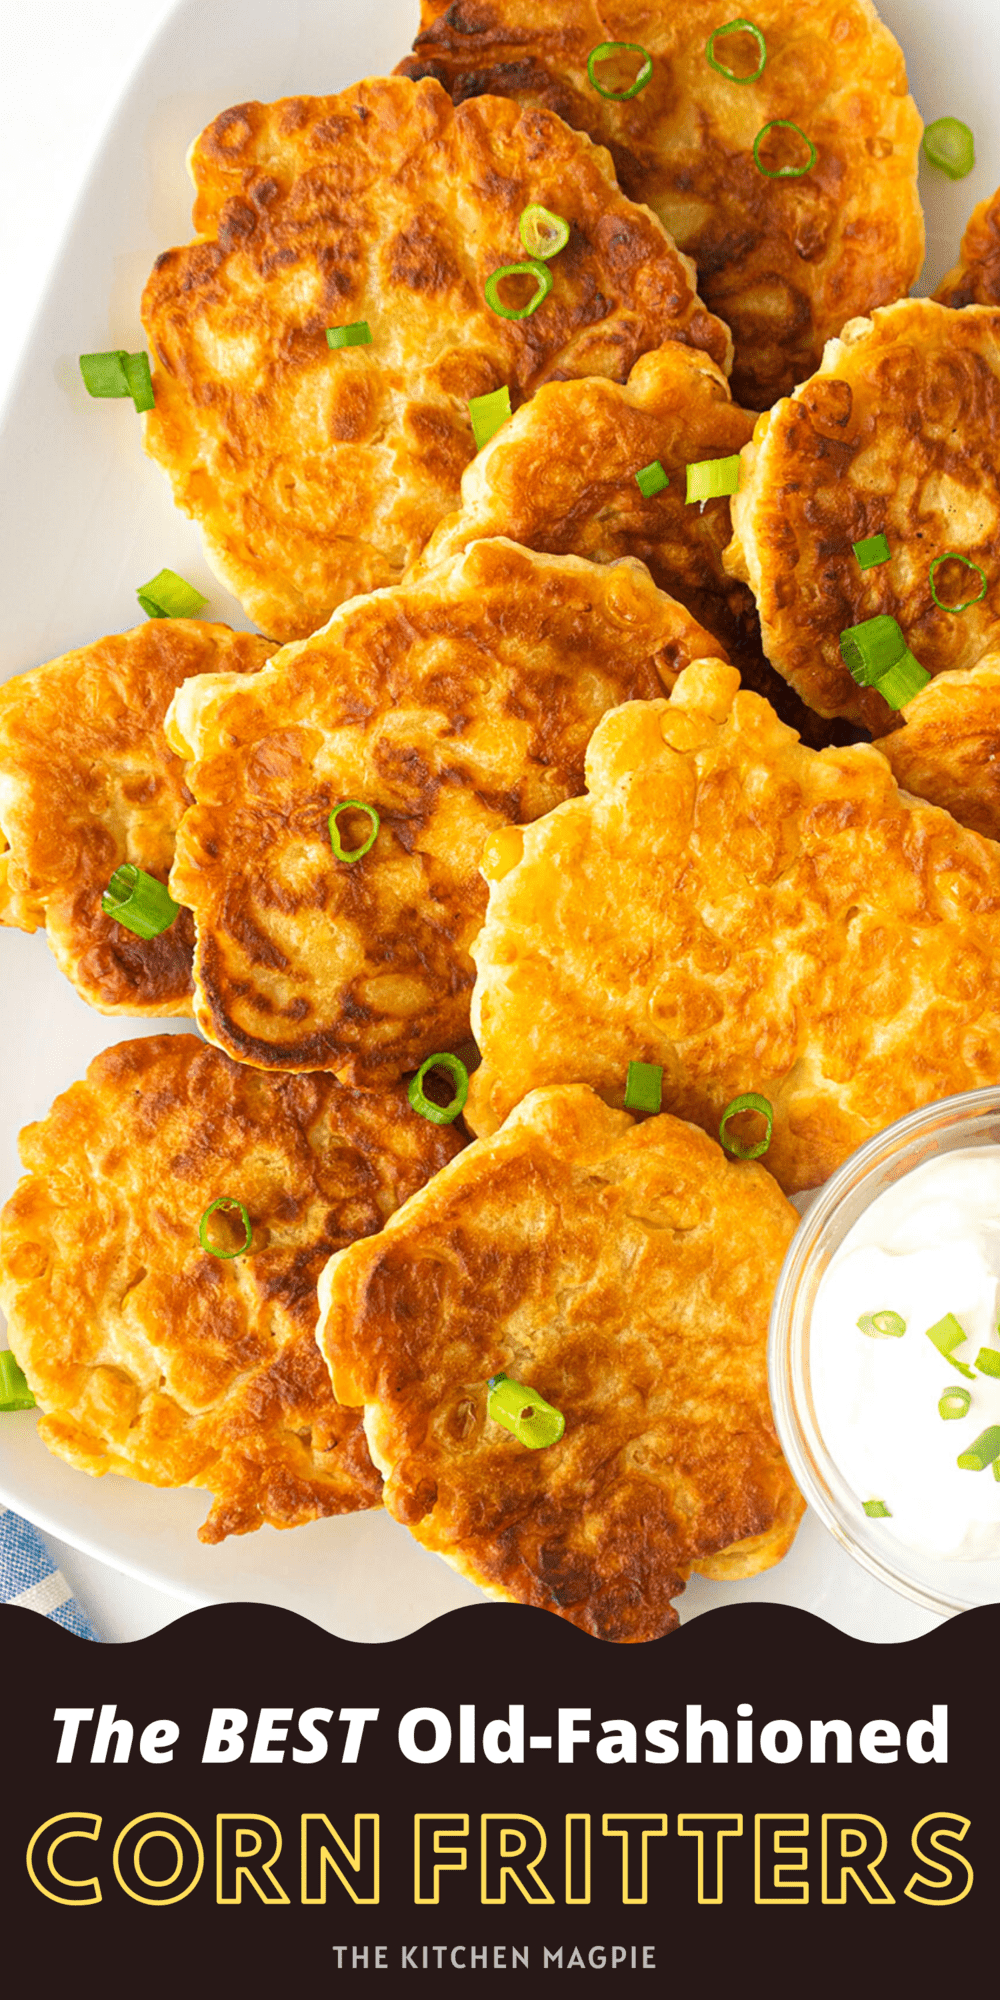 How to make the best corn fritters! Using creamed corn is the secret ingredient for the most flavorful corn fritters you'll ever make!